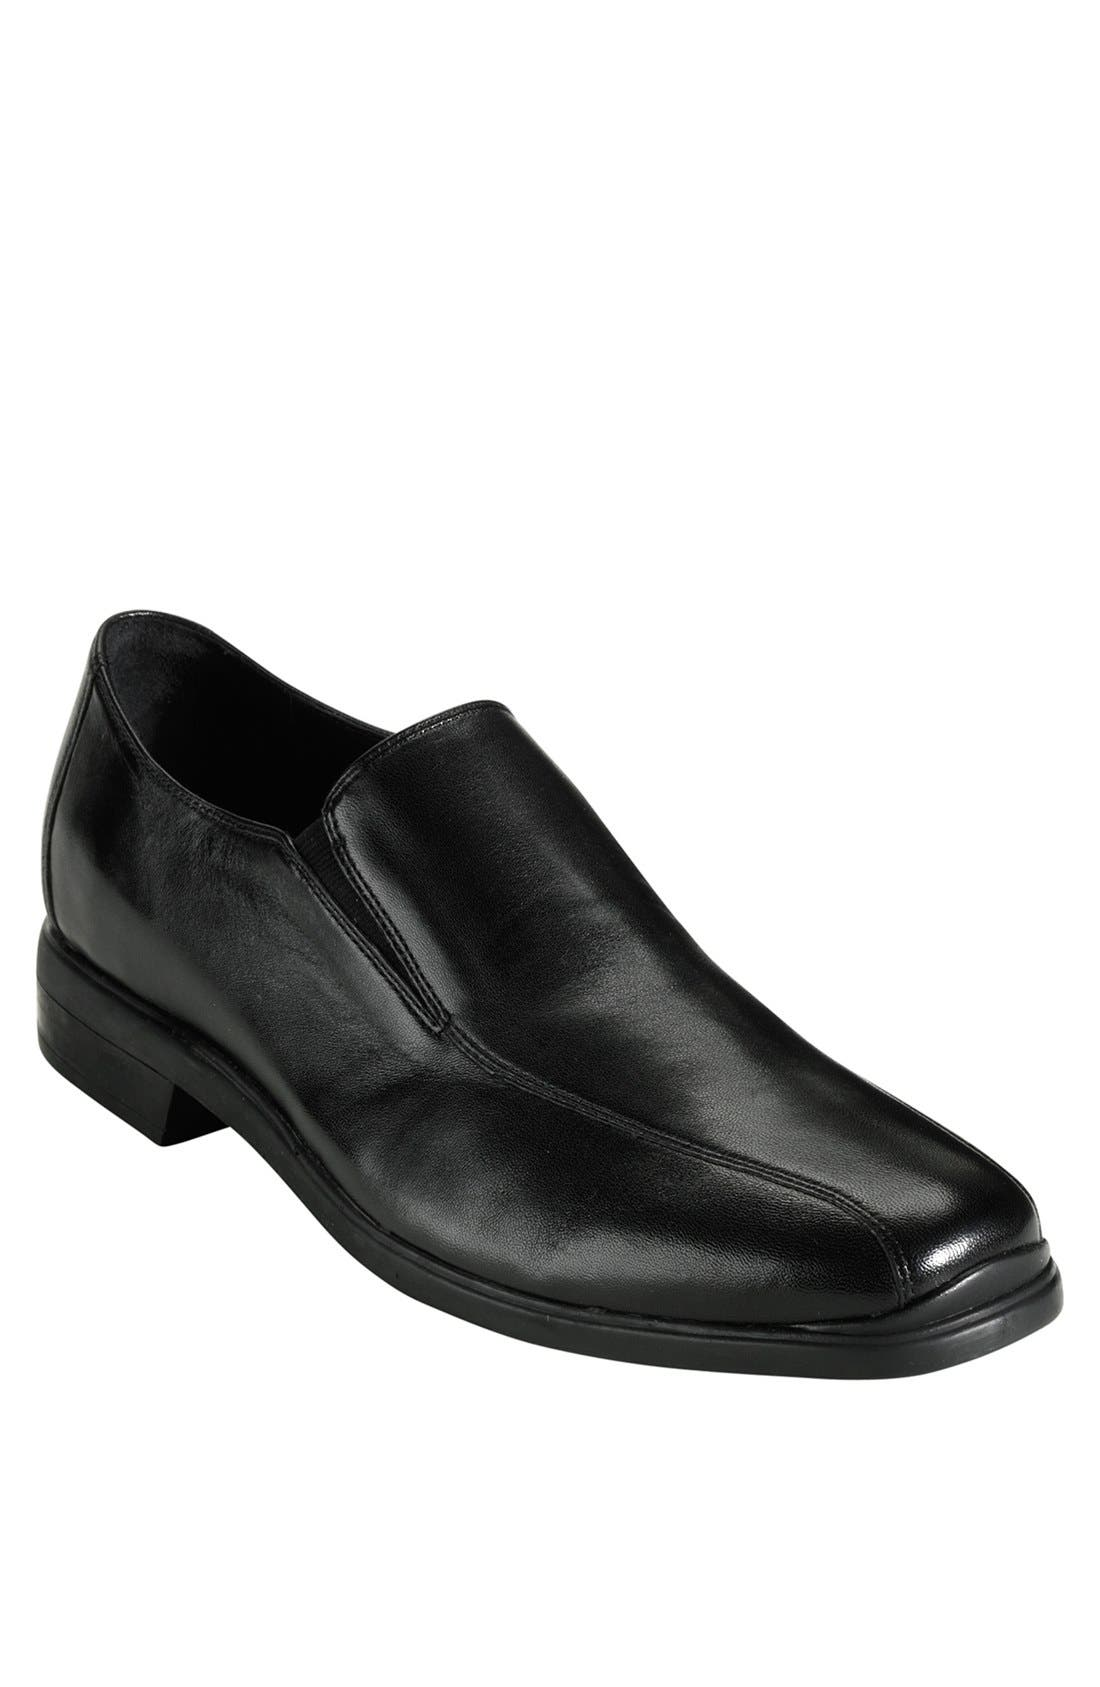 Main Image - Cole Haan 'Air Stylar' Bicycle Toe Loafer   (Men)